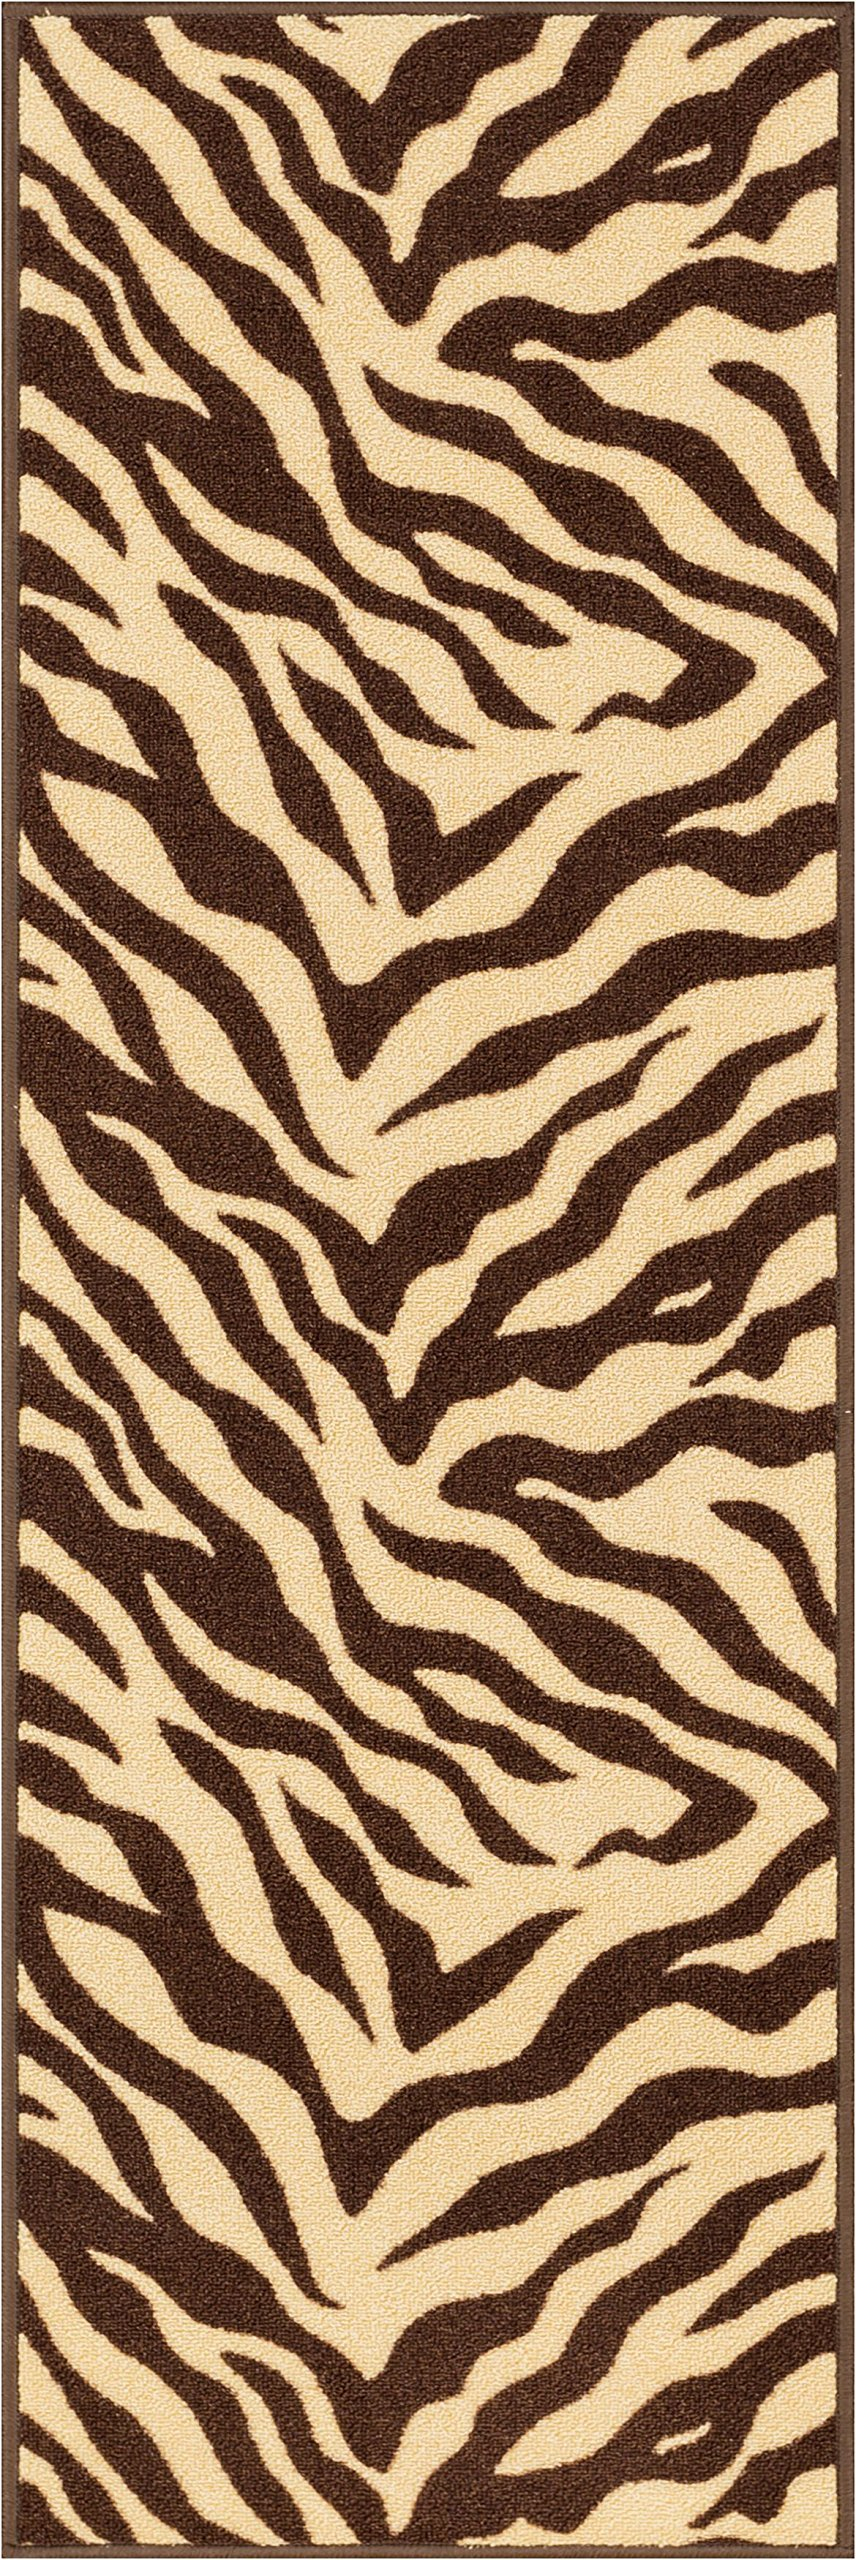 Well Woven 2501-2S Kings Court Zebra Modern Brown Animal Print 1'8'' x 5' Accent Indoor/Outdoor Runner Rug by Well Woven (Image #3)